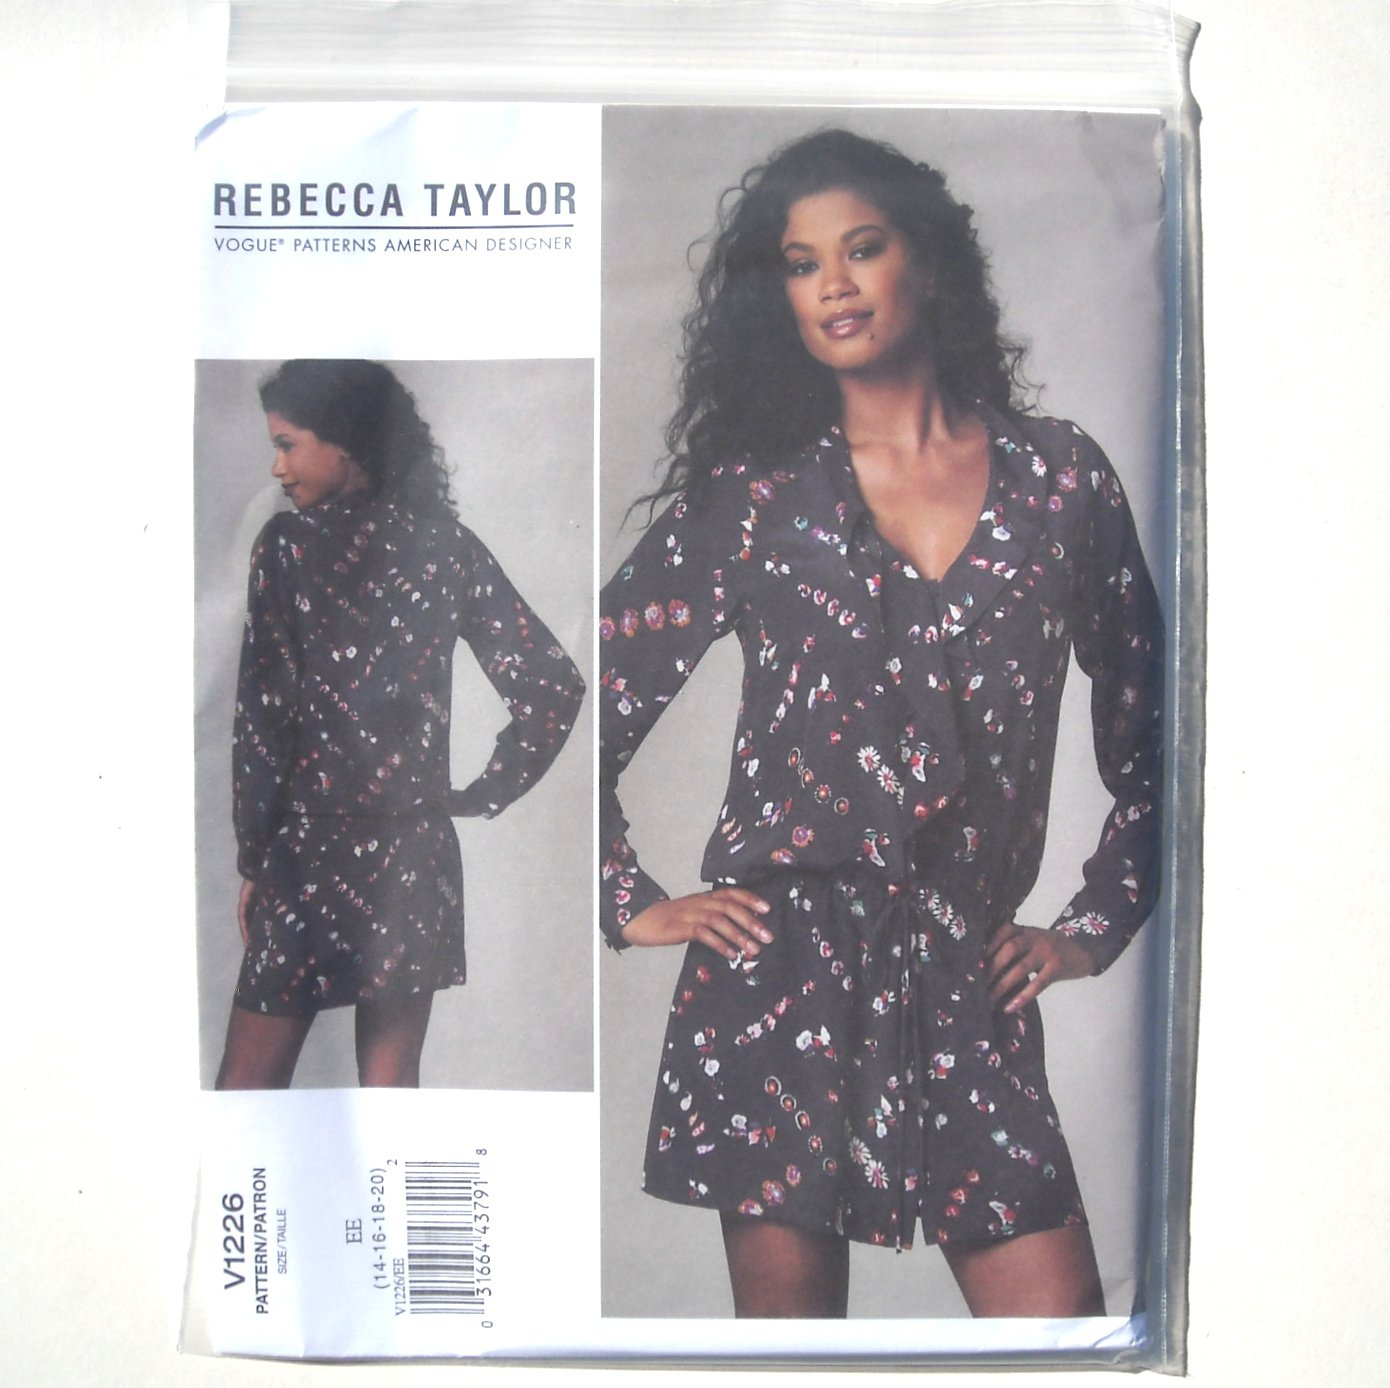 Vogue Designer Pattern V1226 Out Of Print Rebecca Taylor Size 14 - 20 Misses Dress